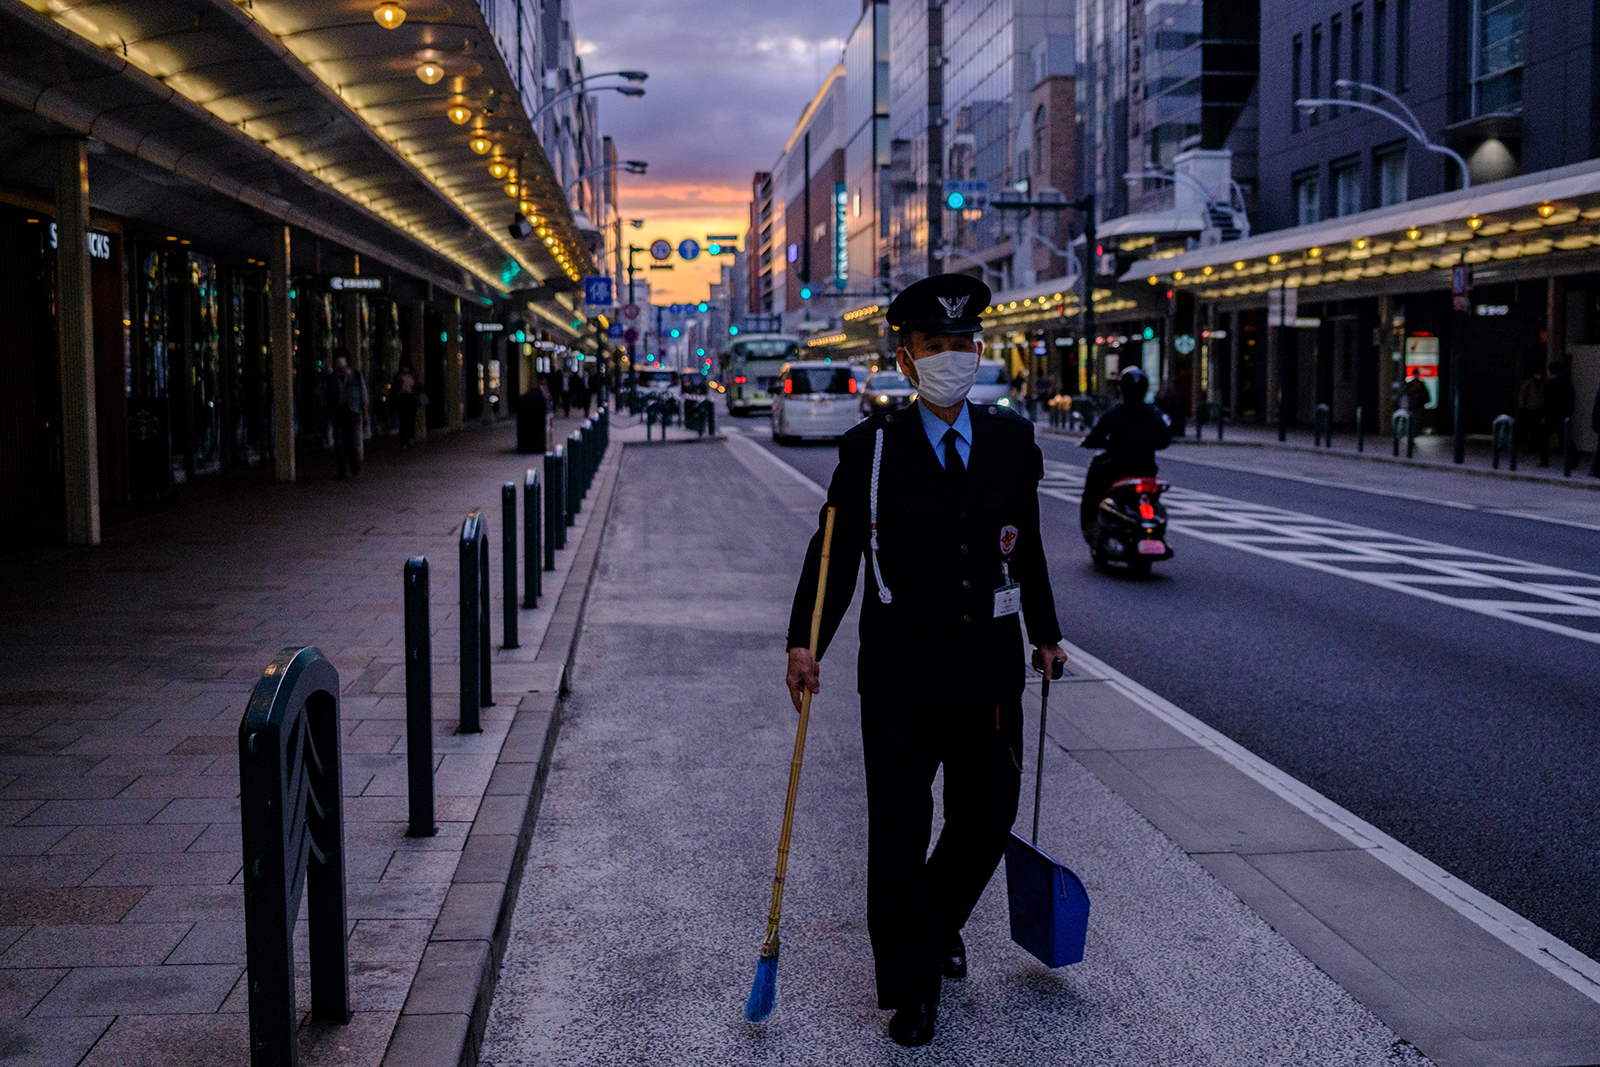 A security guard wearing a face mask walks with a broom in Kyoto on May 21.